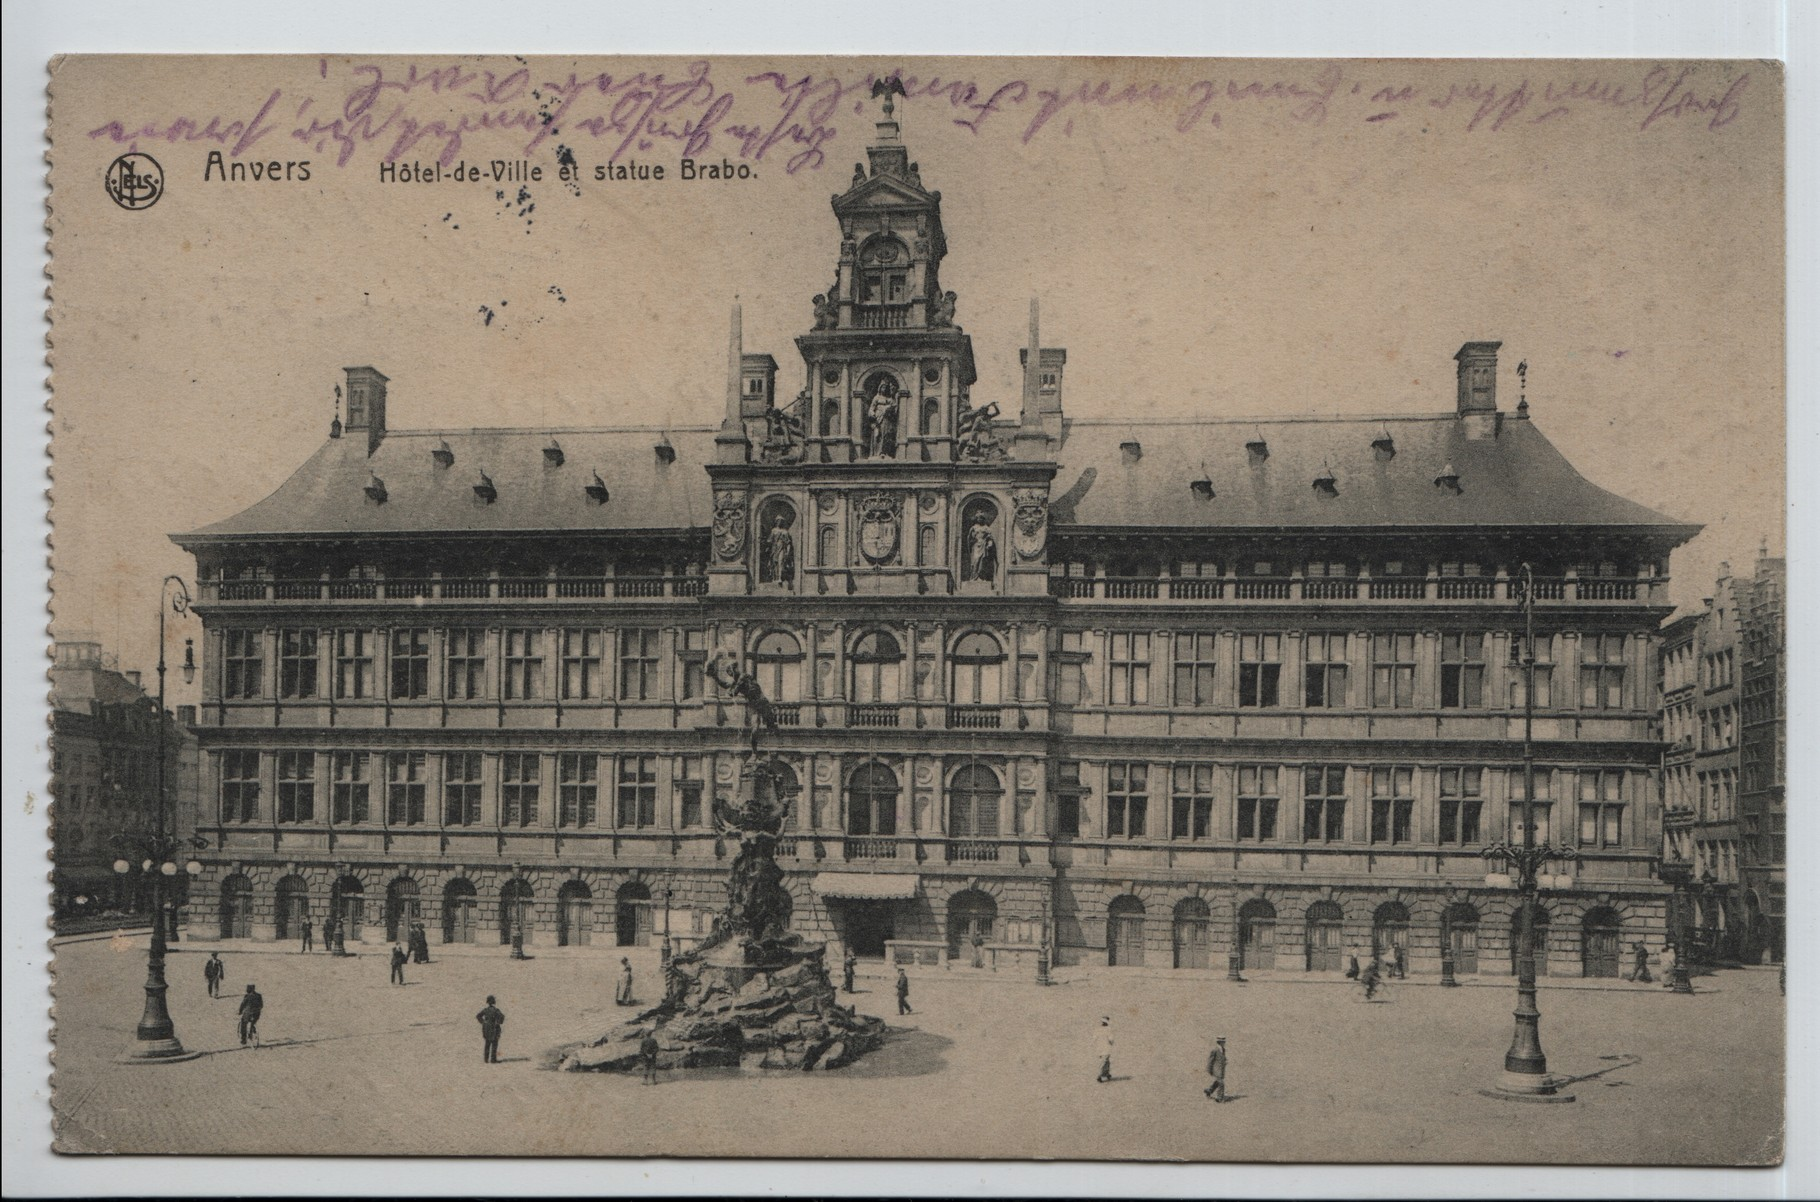 17. Anvers town hall and Brabo statue